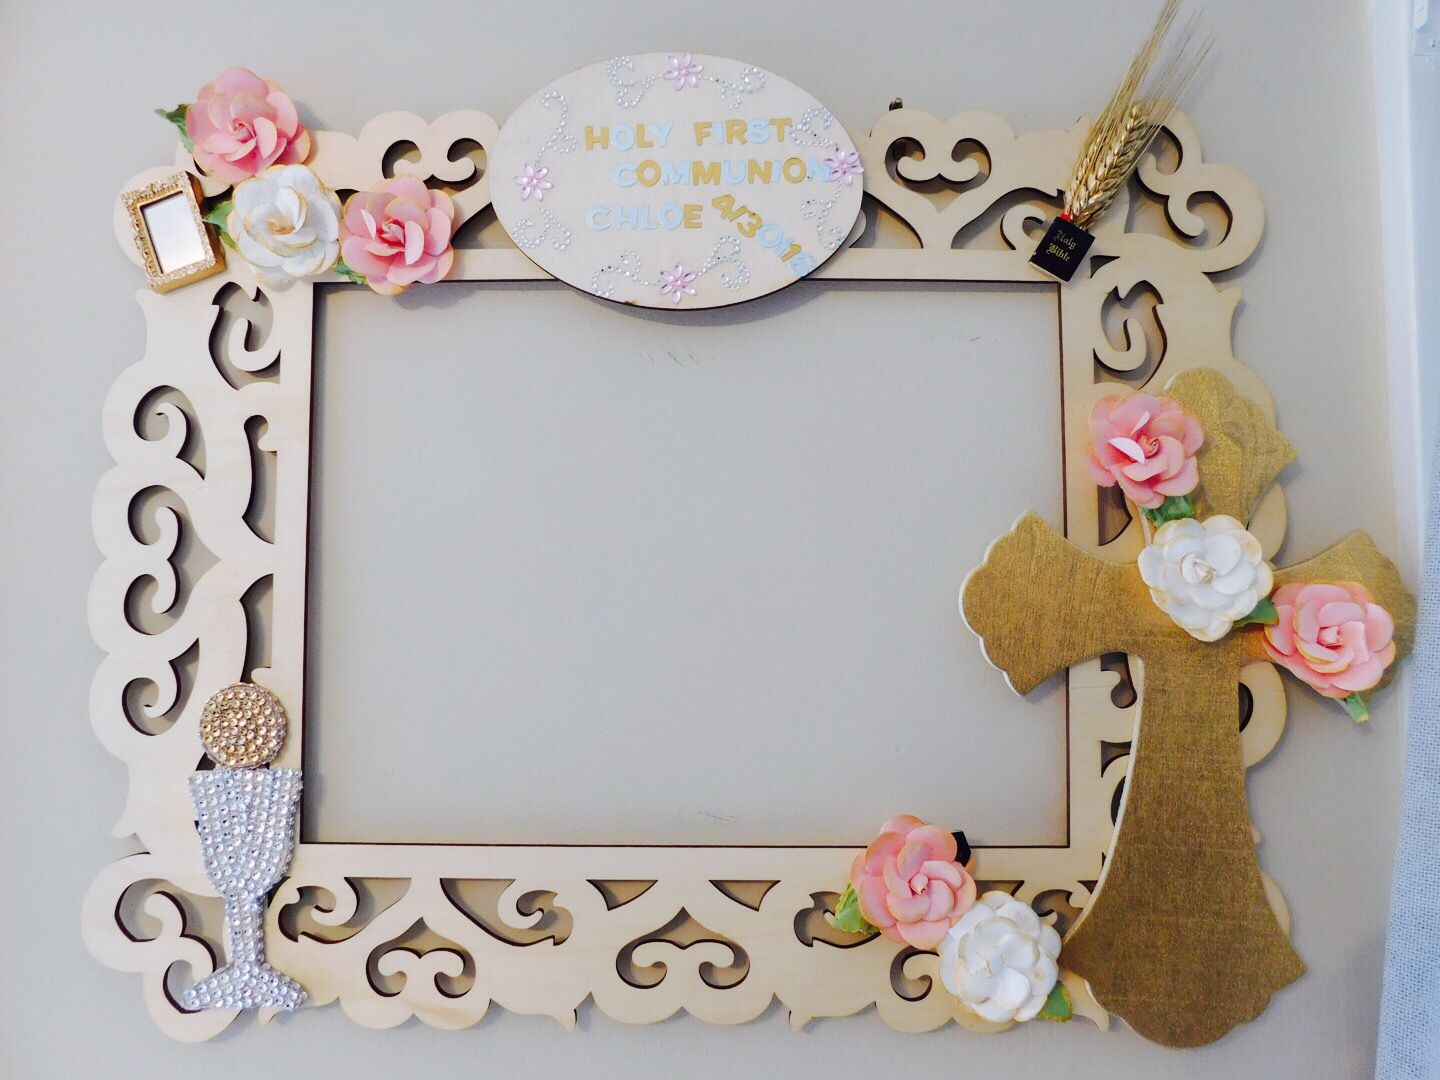 first communion frame picture decoration first communion pinterest communion decoration. Black Bedroom Furniture Sets. Home Design Ideas